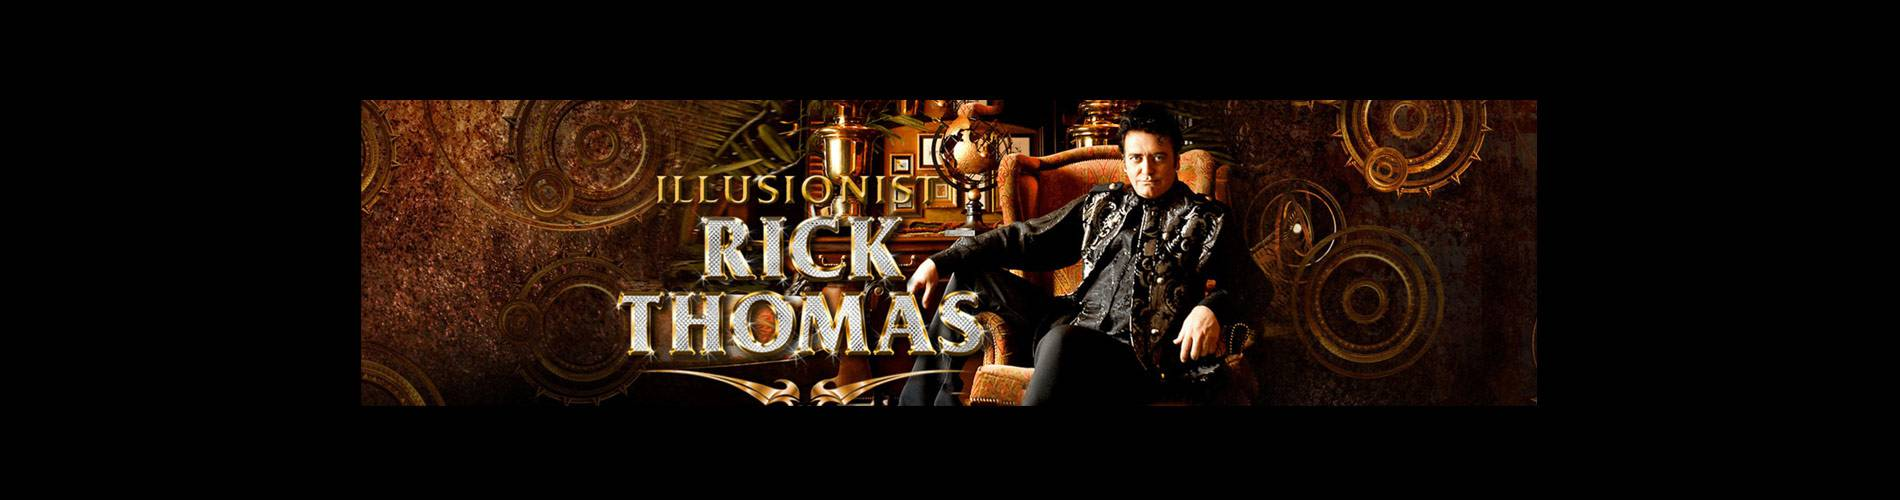 Rick Thomas - Premier Illusionist